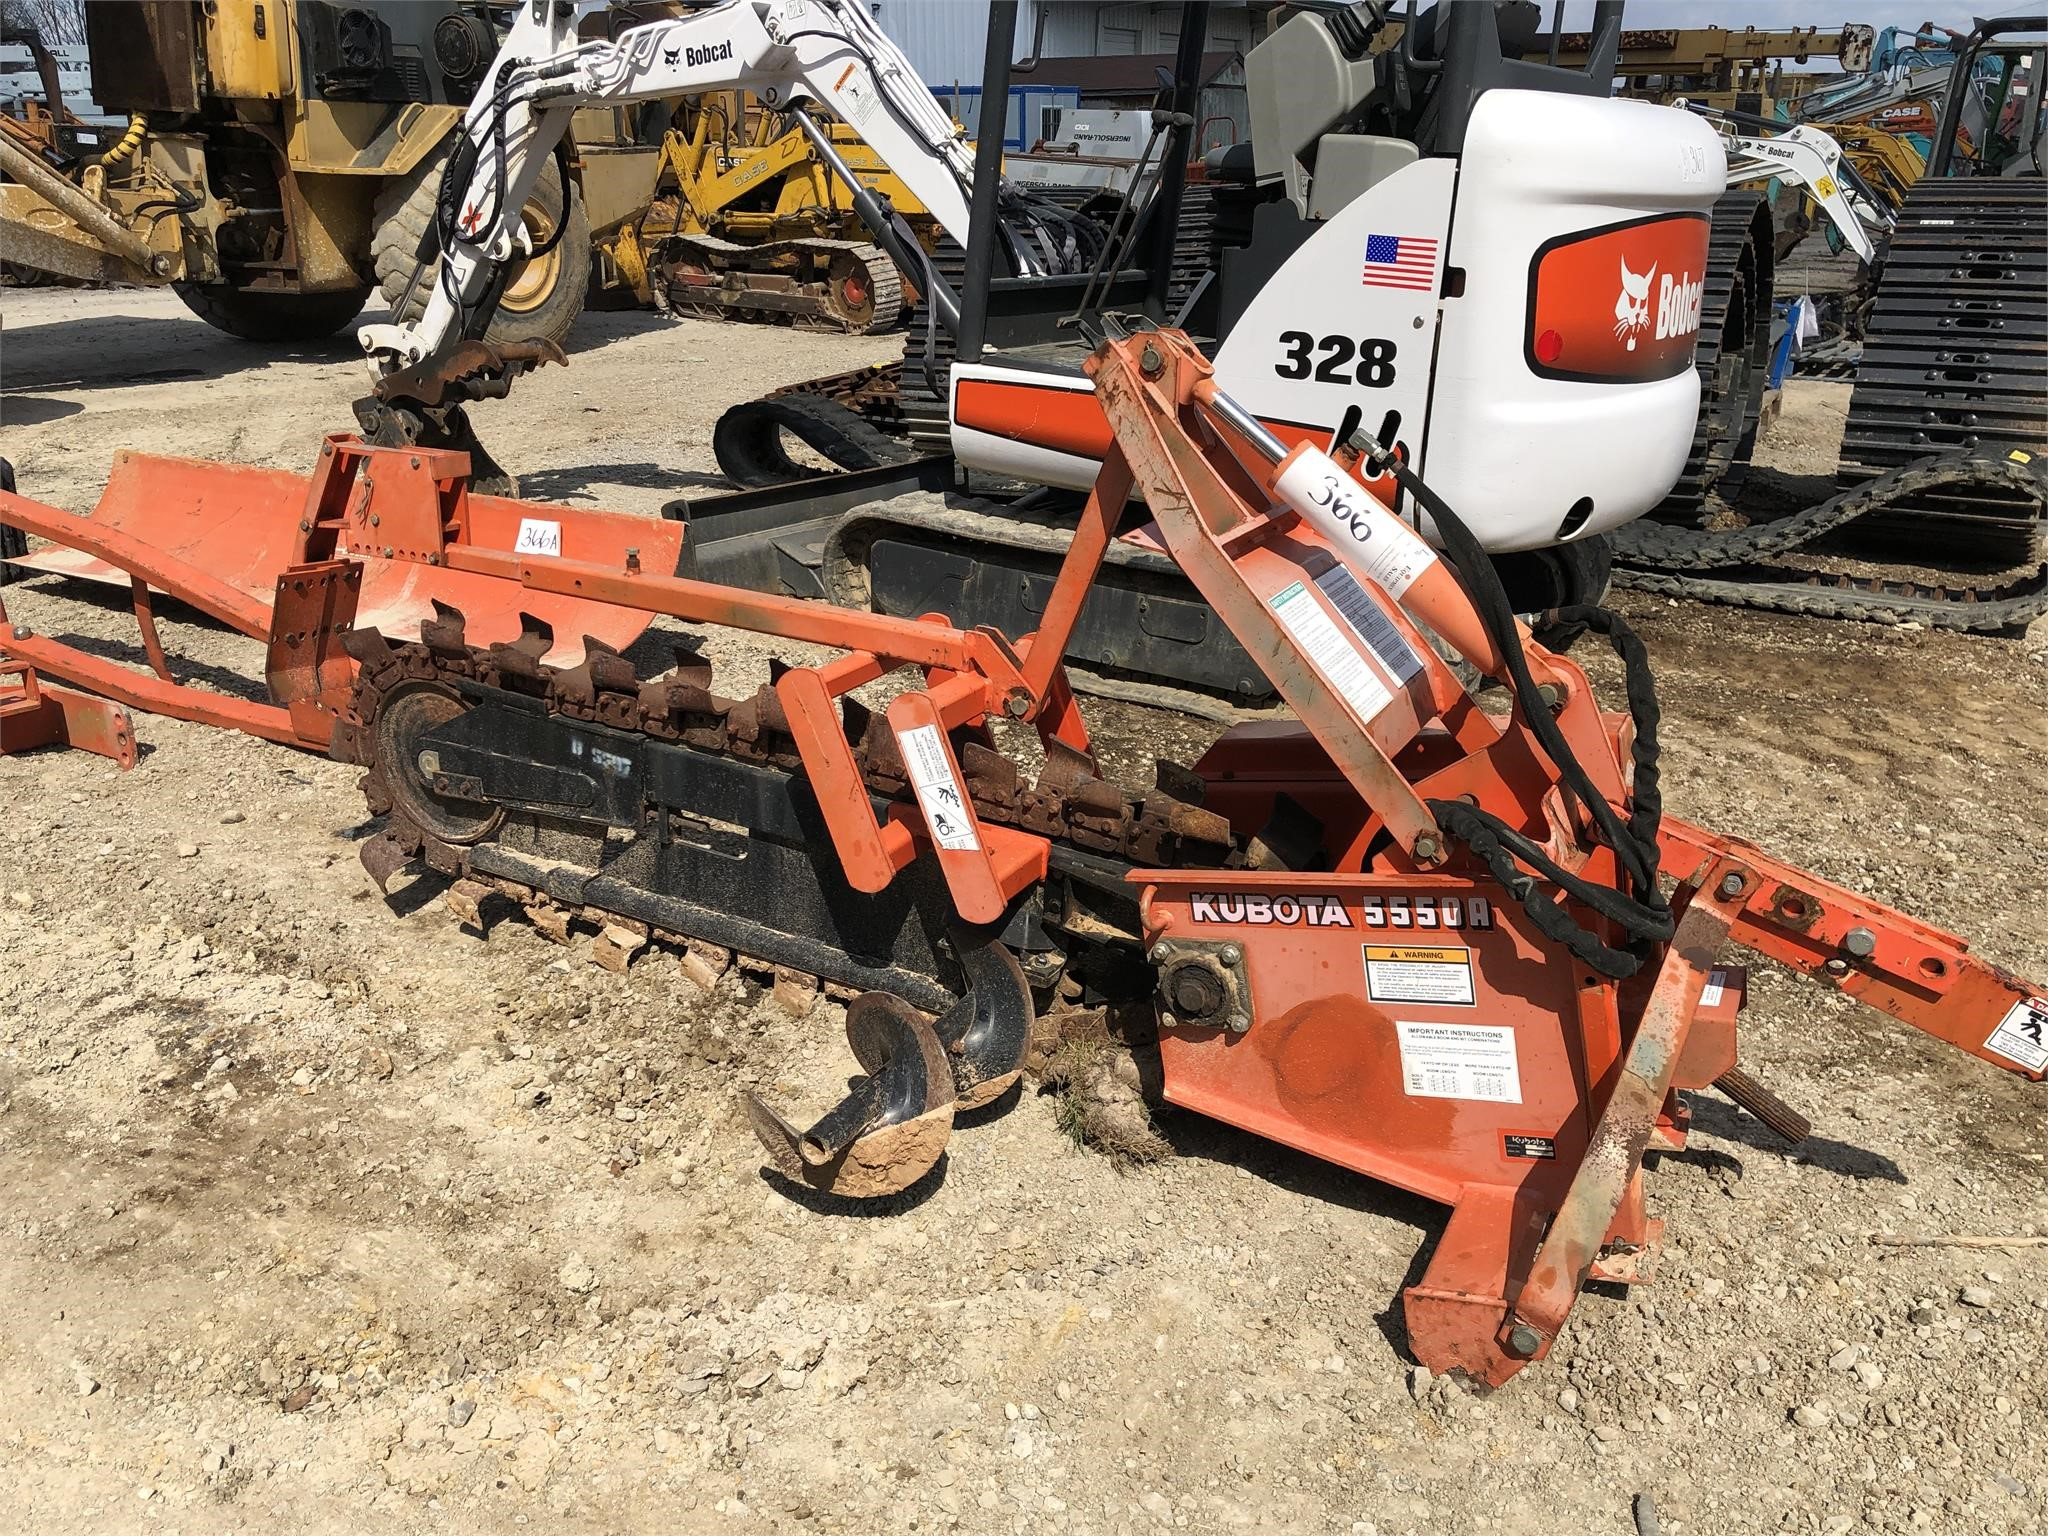 KUBOTA 5550A For Sale in La Vergne, Tennessee | LiftsToday com